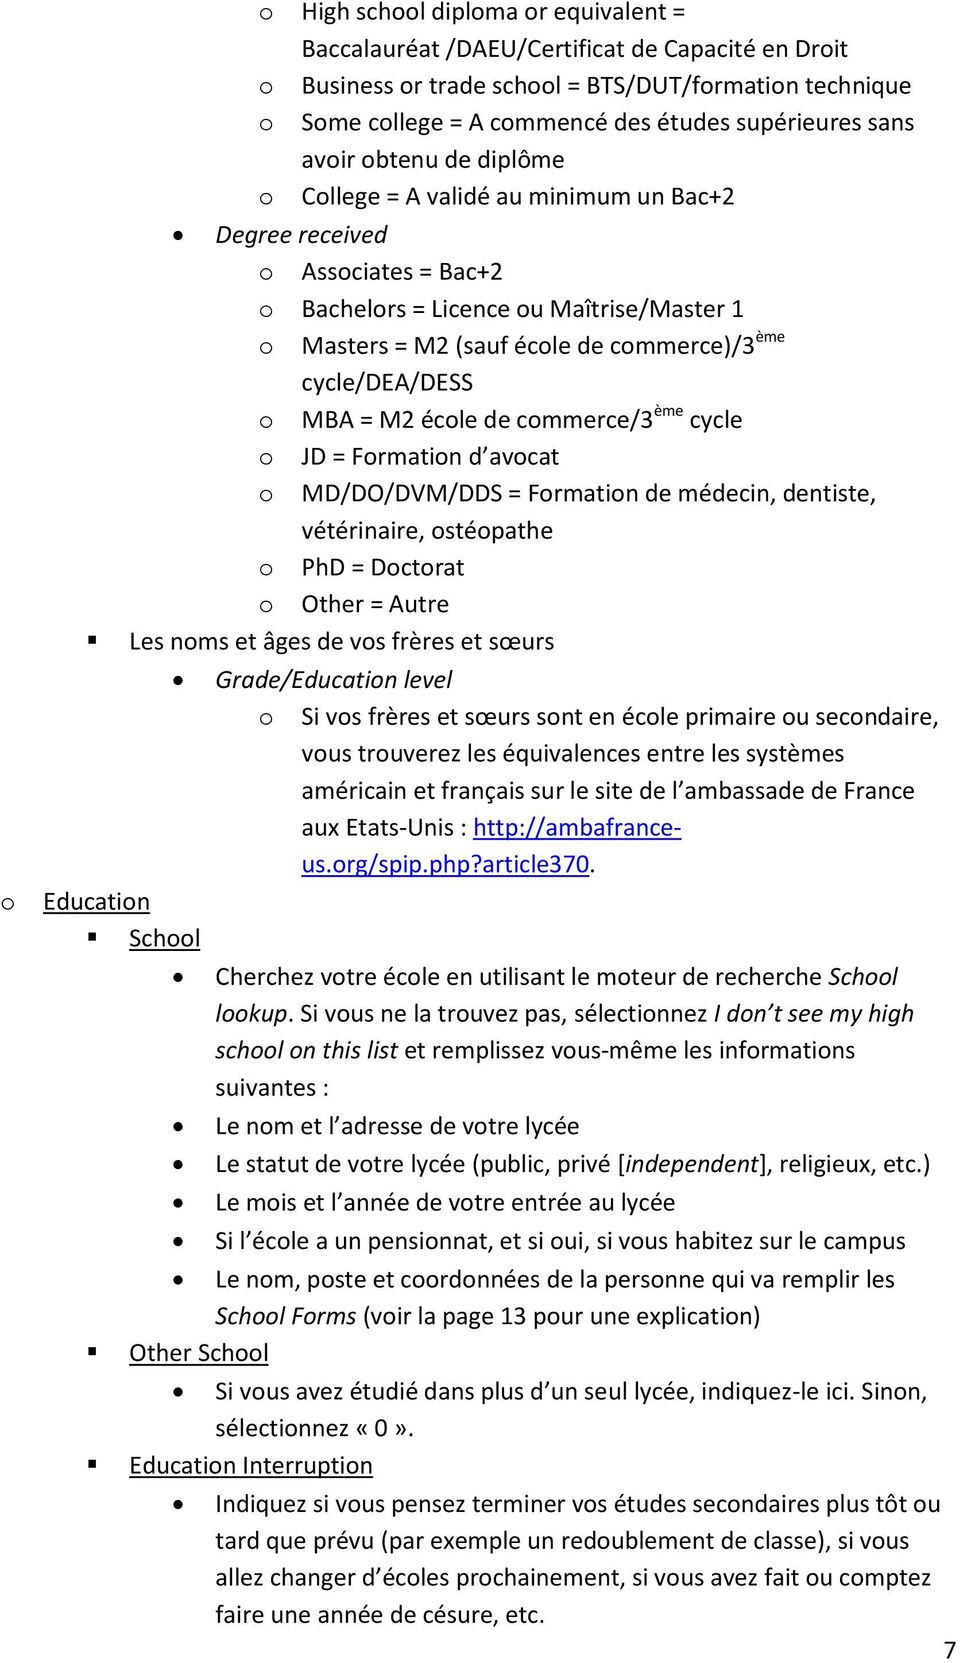 cycle/dea/dess o MBA = M2 école de commerce/3 ème cycle o JD = Formation d avocat o MD/DO/DVM/DDS = Formation de médecin, dentiste, vétérinaire, ostéopathe o PhD = Doctorat o Other = Autre Les noms